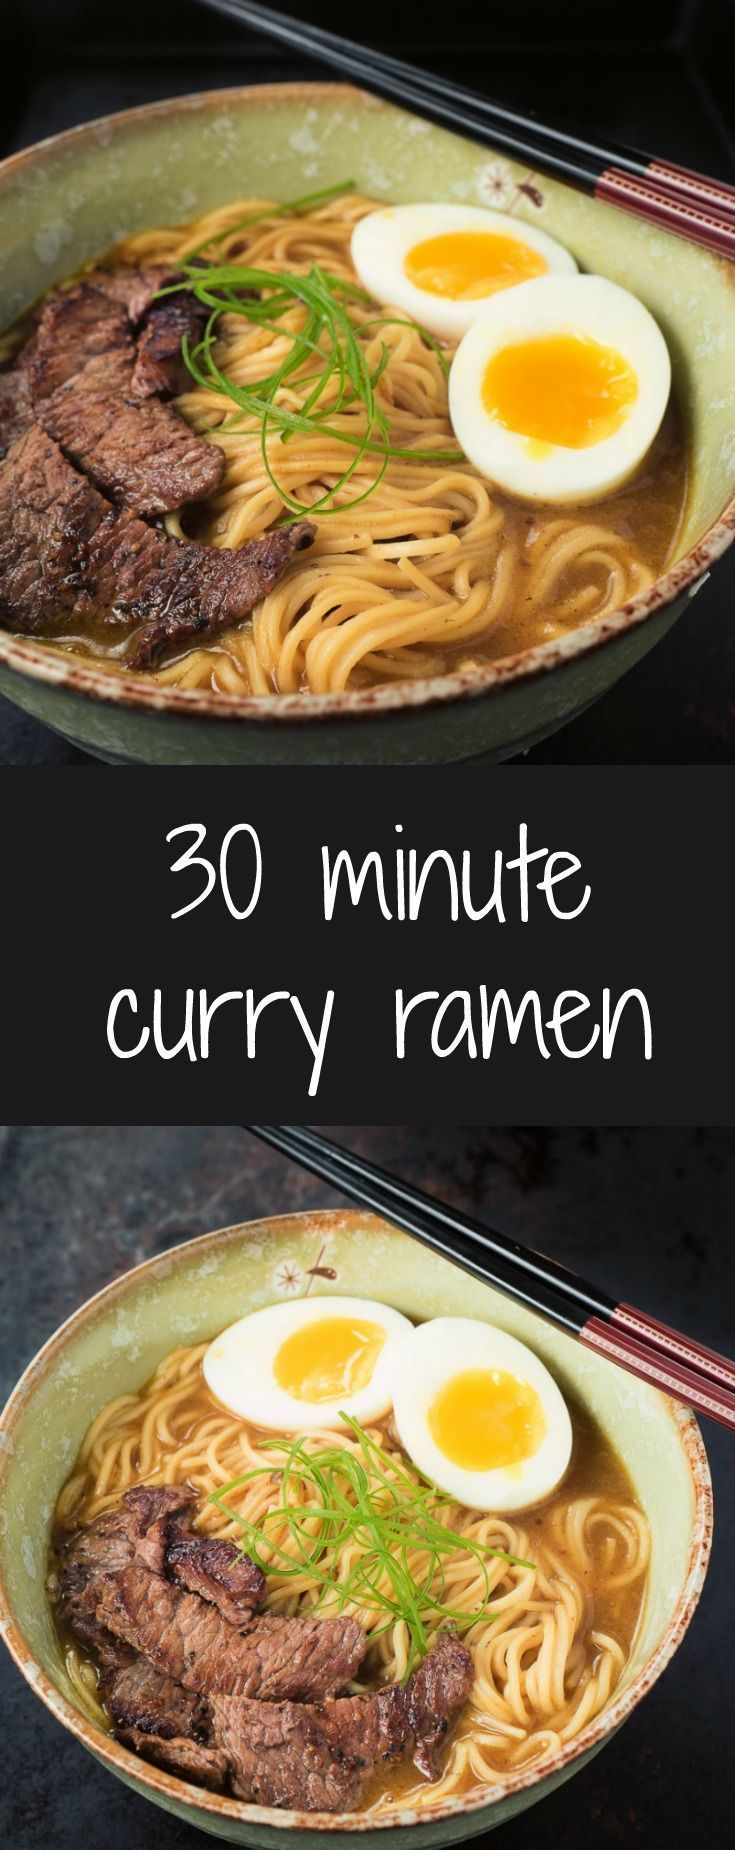 If you are looking for a quick curry ramen fix this one can be on the table 30 minutes after you walk into the kitchen. It's rich, salty goodness in a bowl.